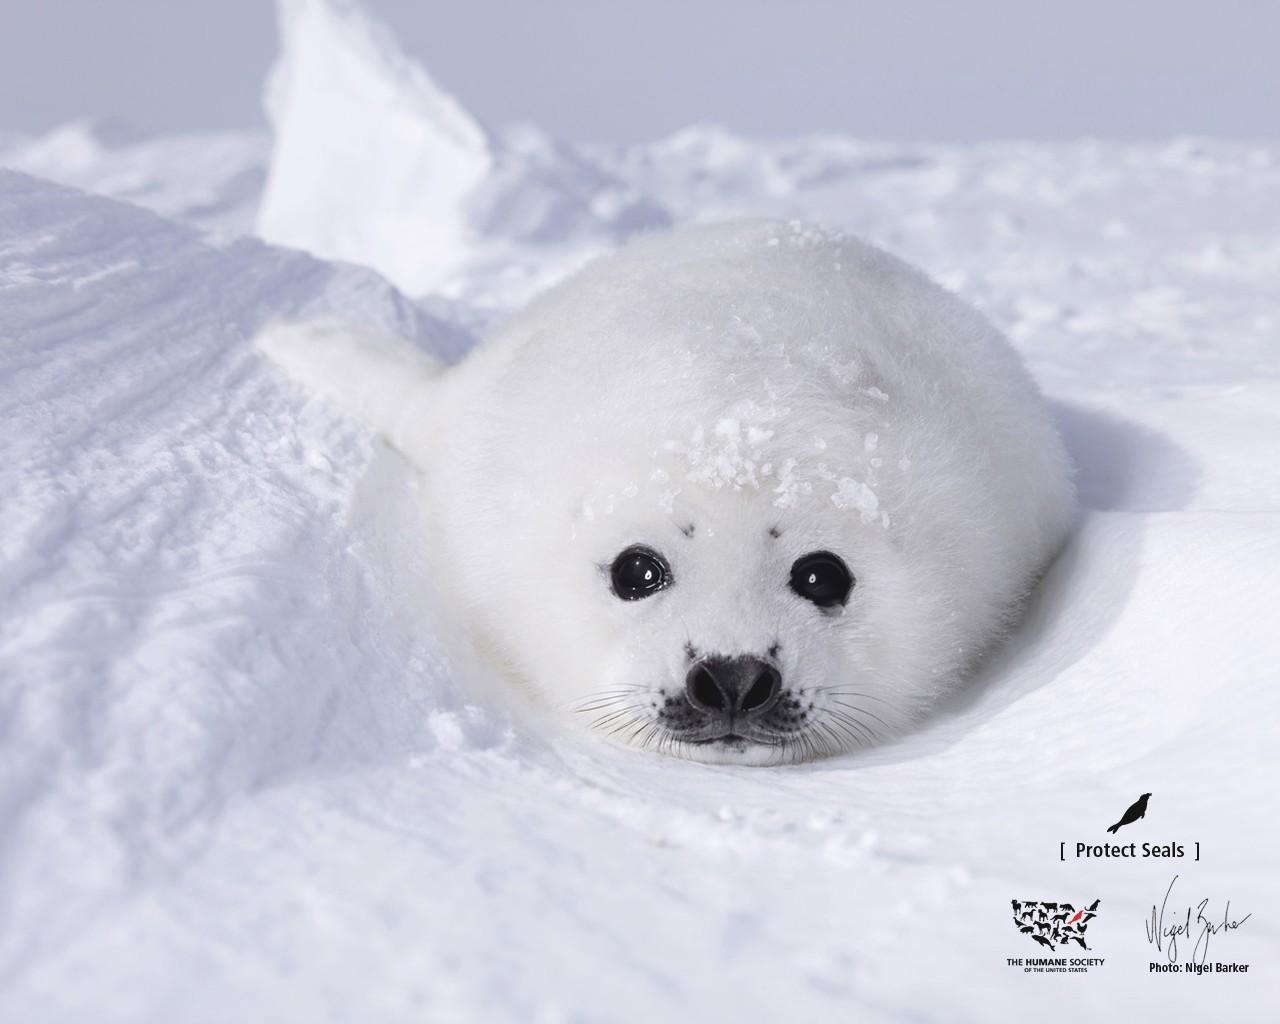 White seal wallpaper hd download - Download white background hd ...